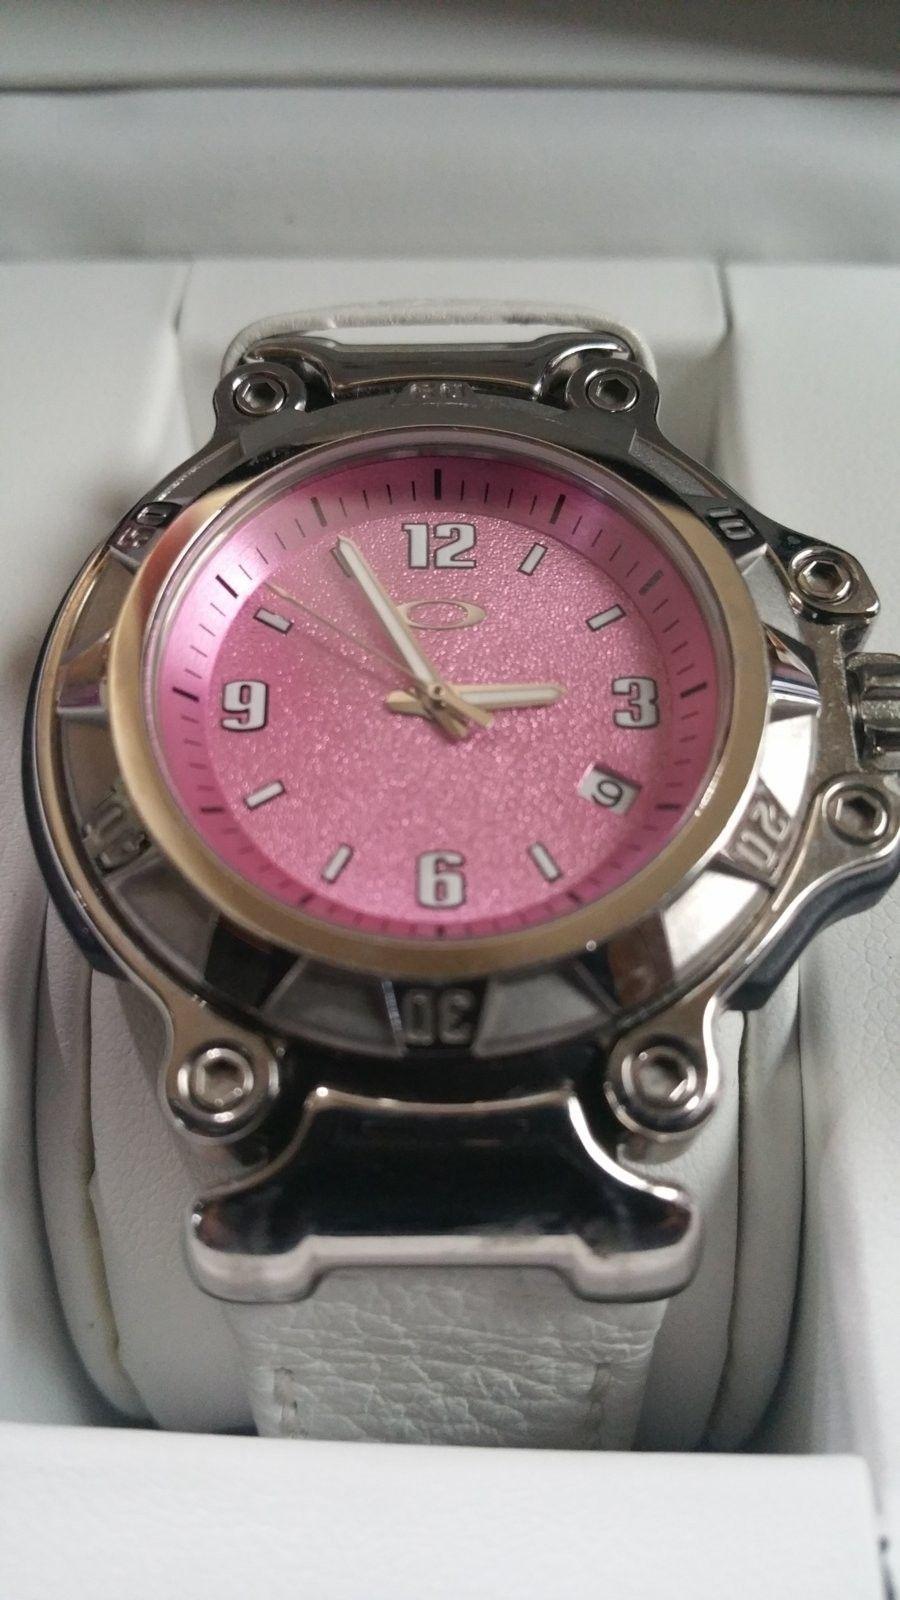 Woman's Crankcase Watch - 20160703_183556.jpg